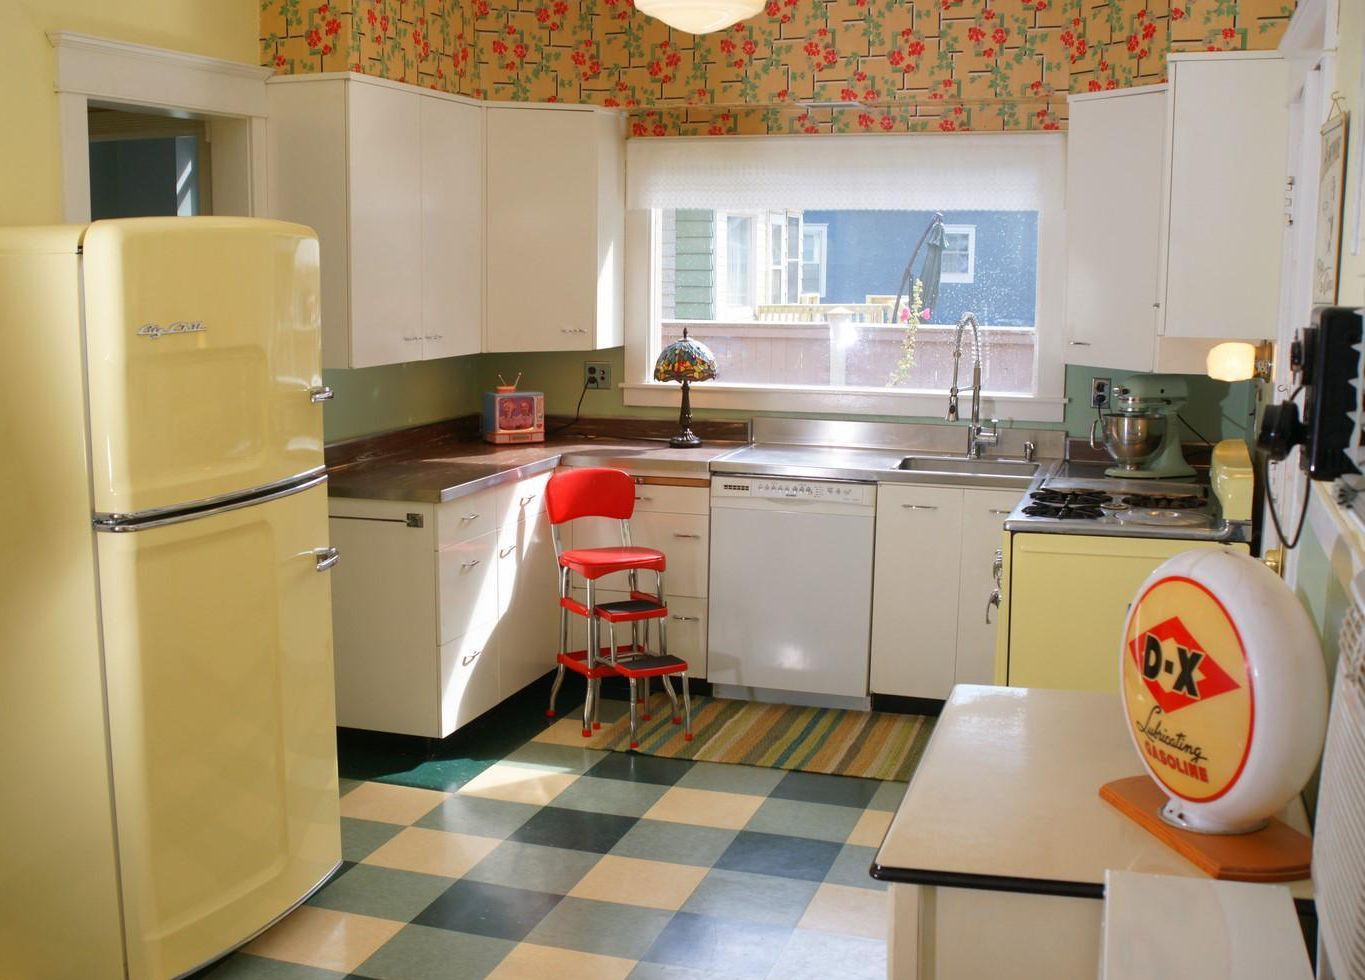 Retro Kitchen Appliance Vintage Kitchen With Big Chill Refrigerator In Buttercup Yellow